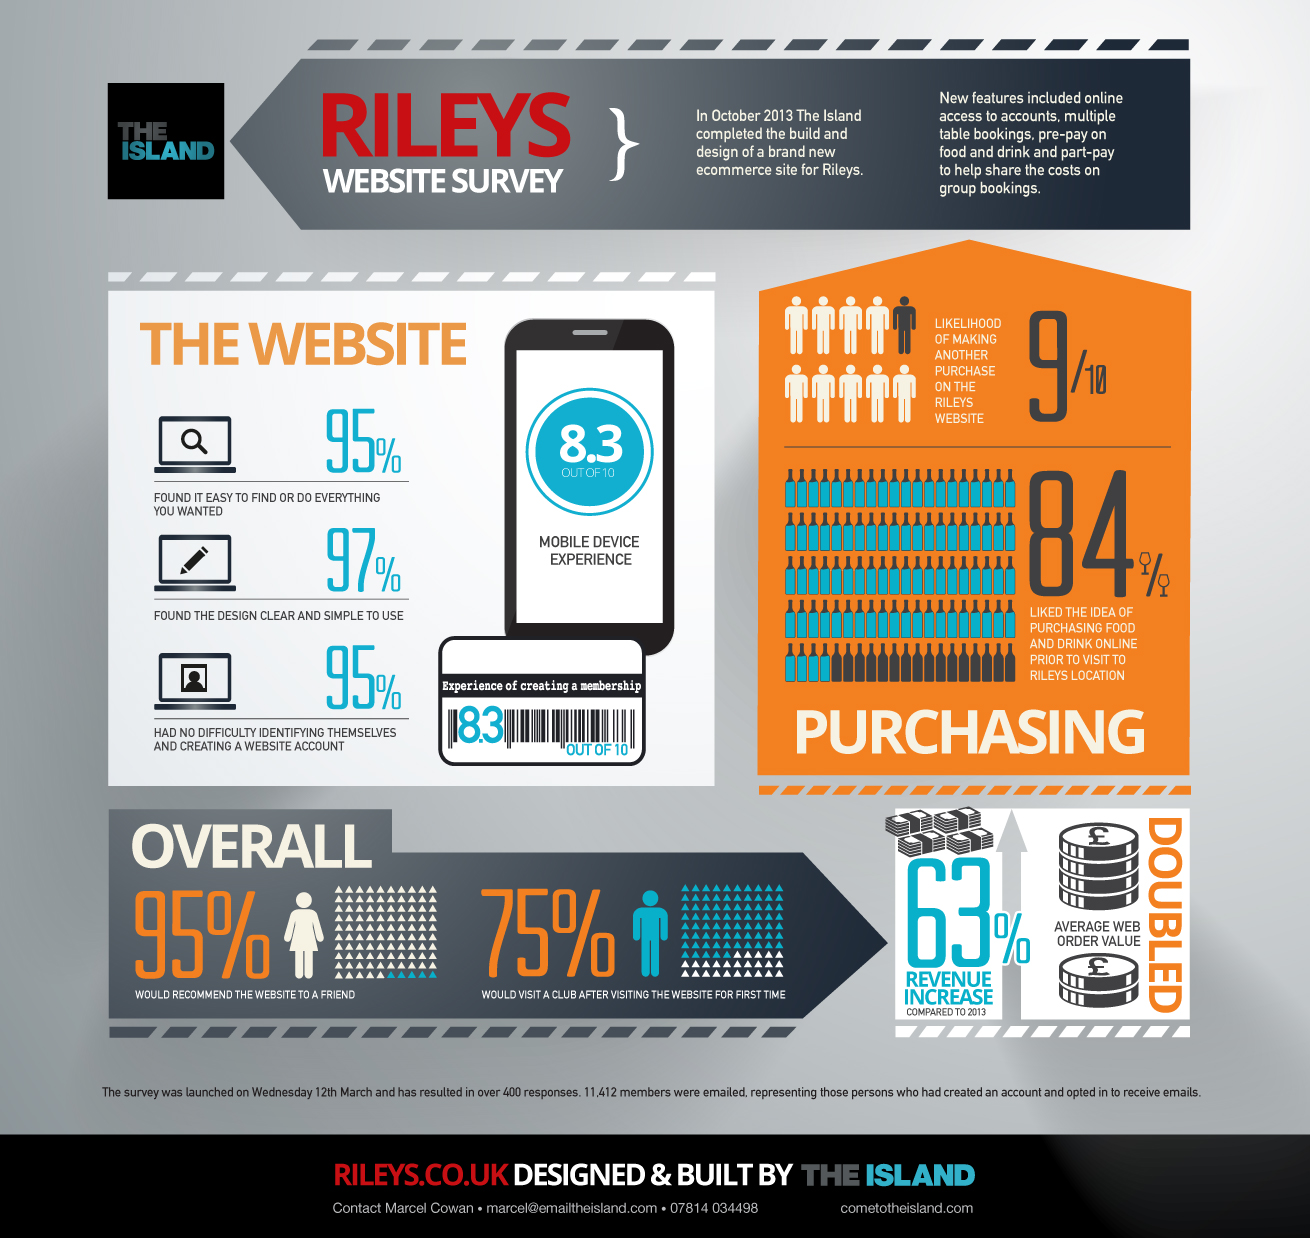 leisure digital marketing for rileys